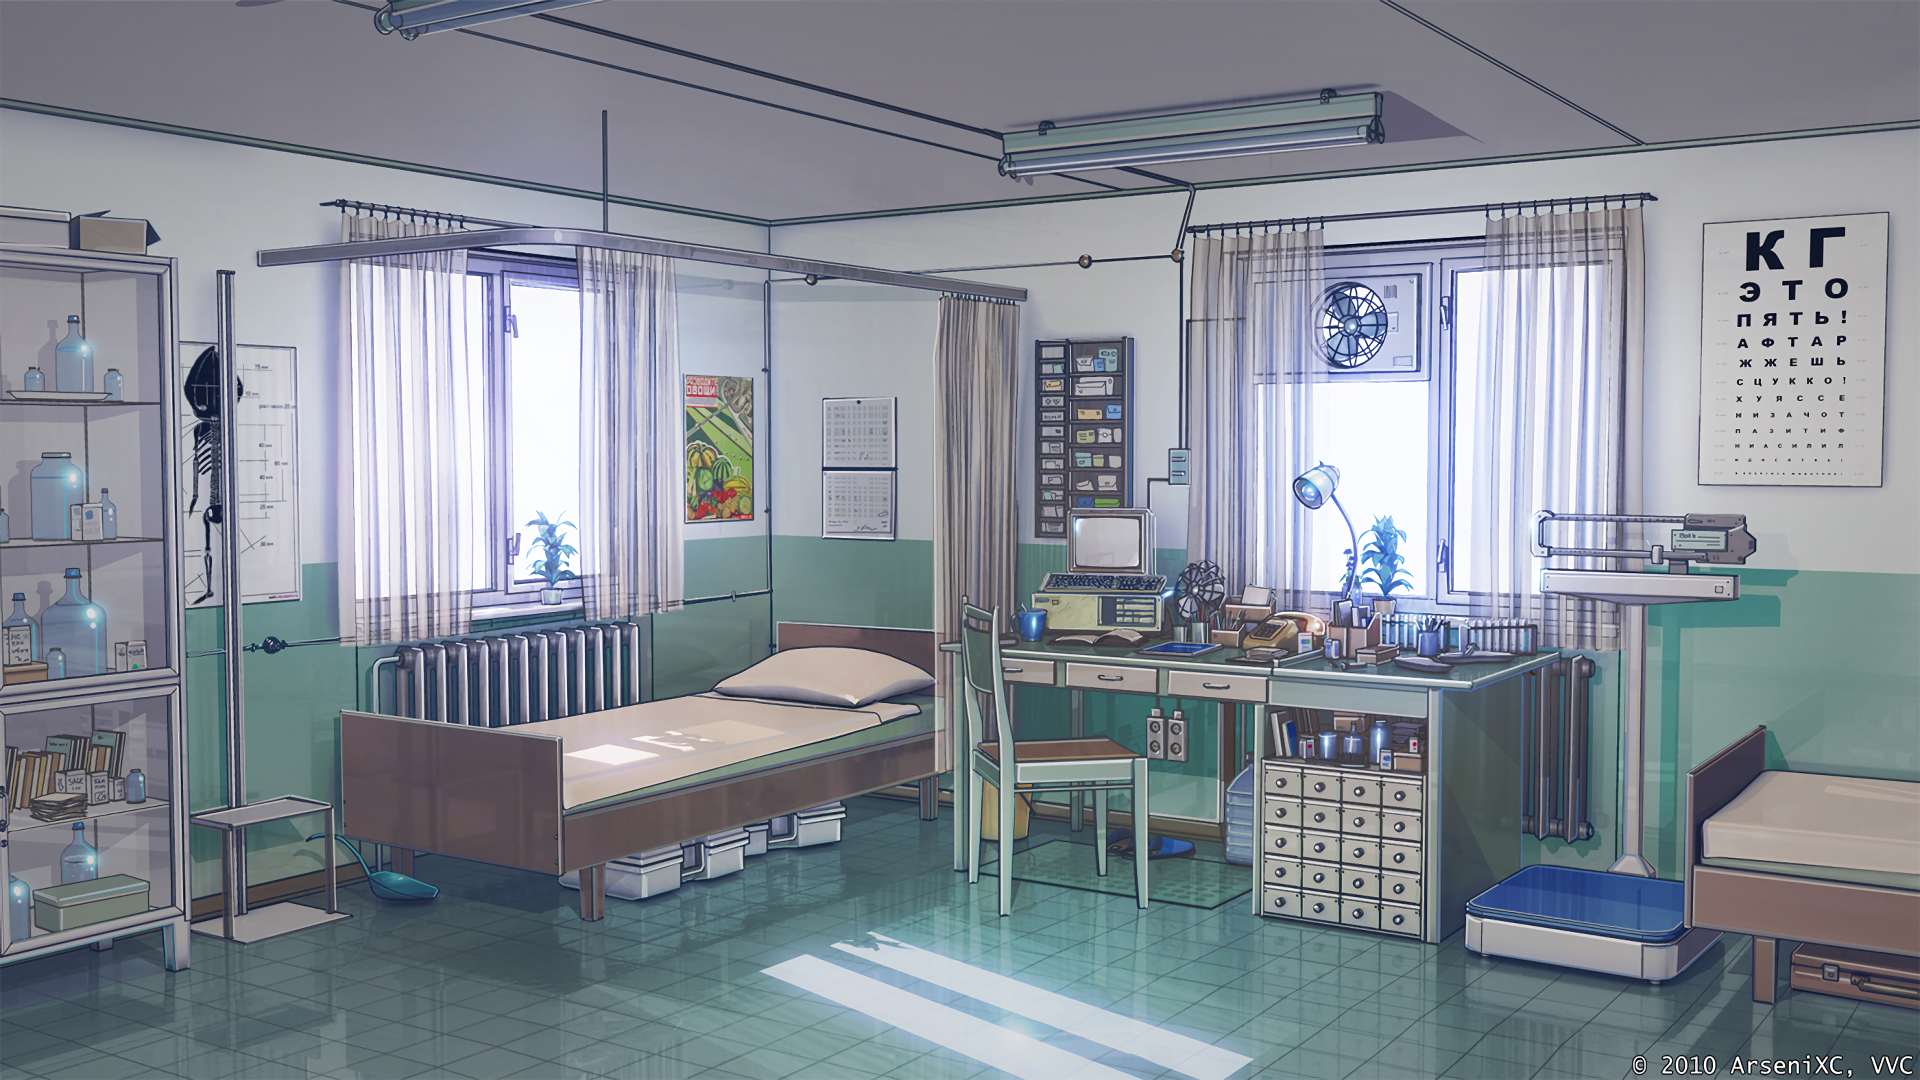 HD Wallpaper | Background Image ID:749383 - Hospital PNG HD Images